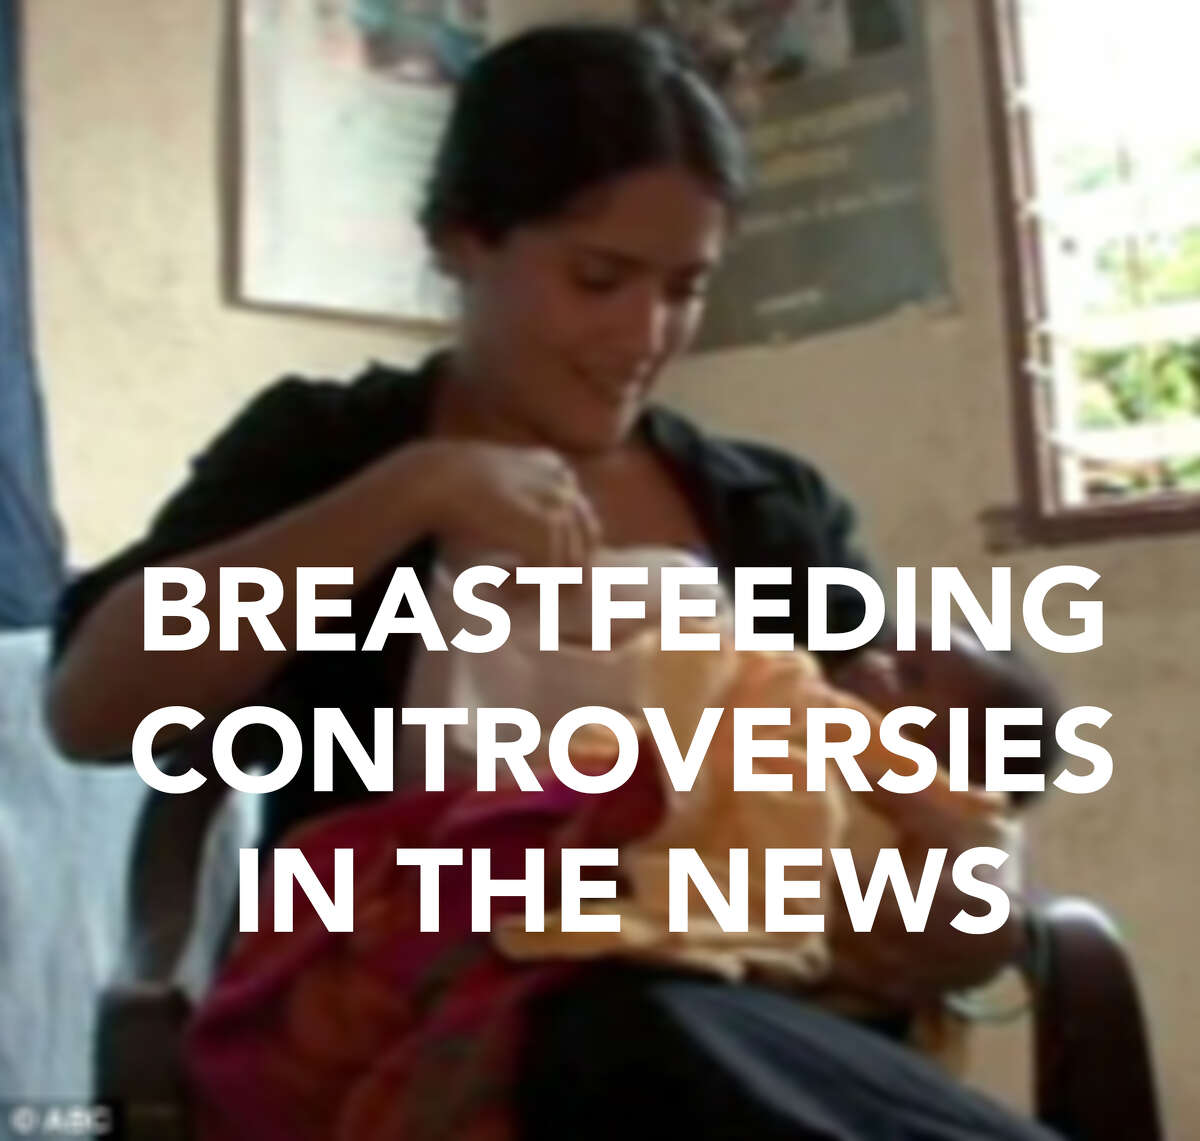 This isn't the first time breastfeeding has been in the news, click through for some of the more controversial moments.